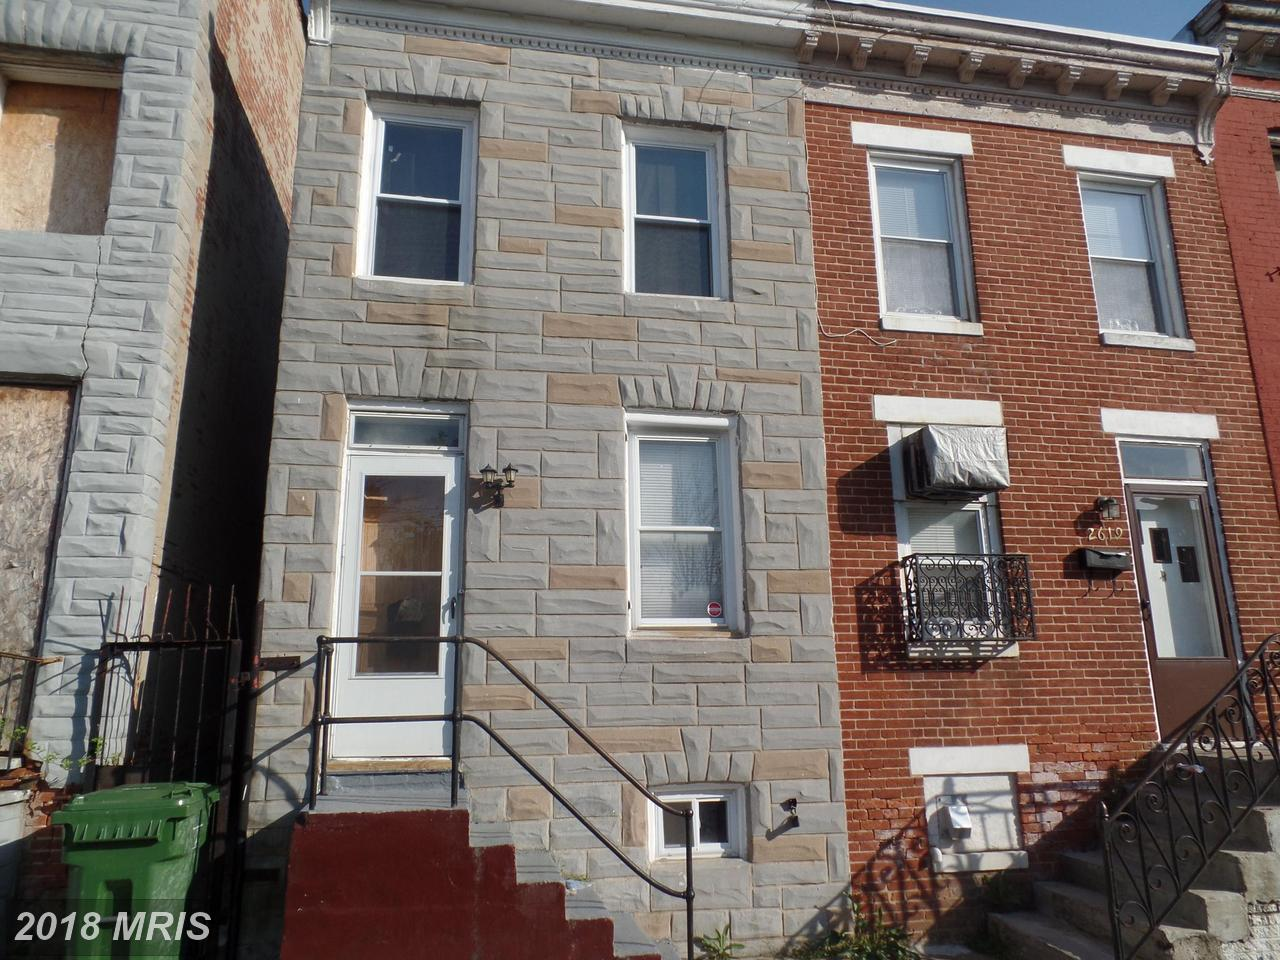 2 bedroom homes for sale in baltimore md baltimore mls - 2 bedroom homes for rent baltimore md ...